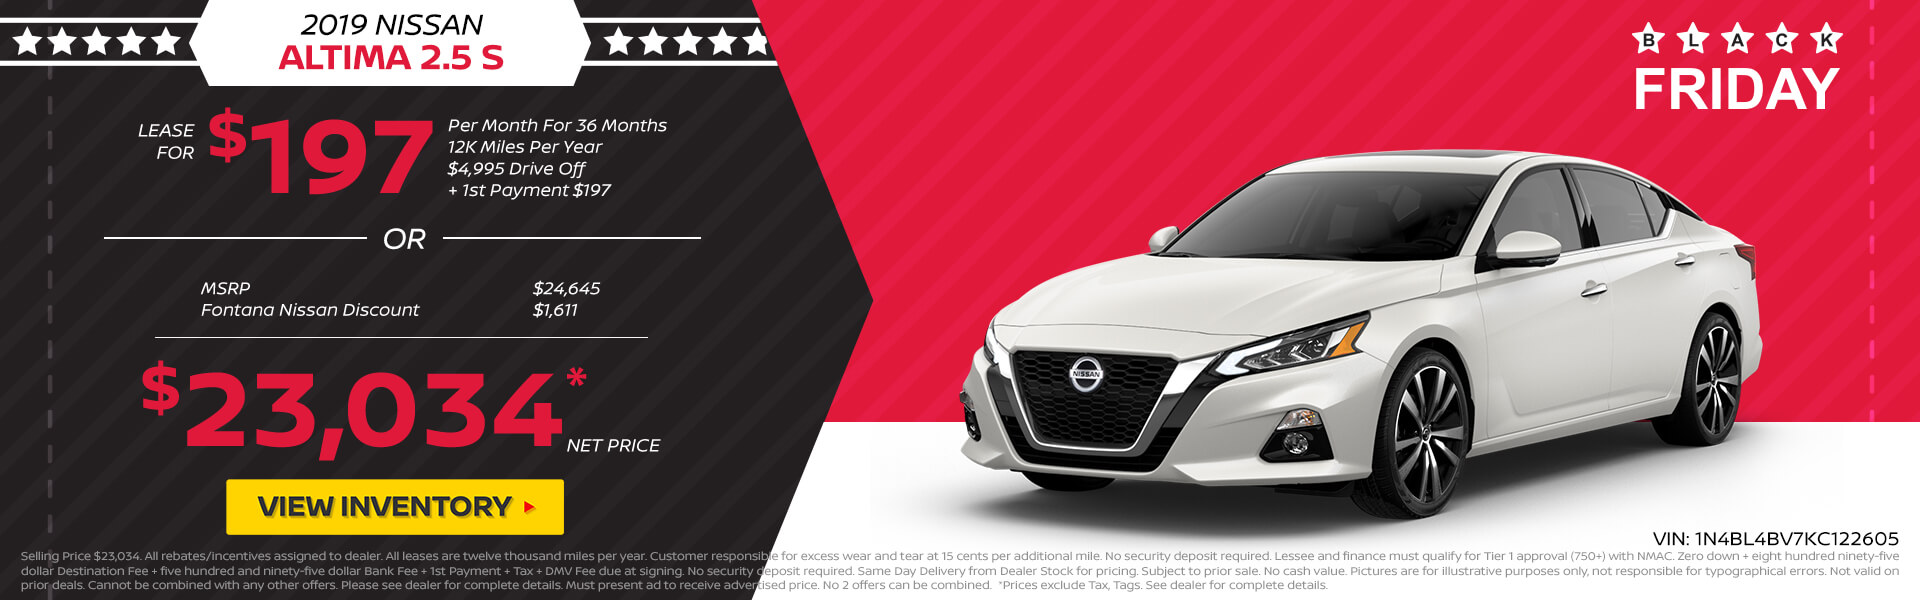 Nissan Altima $197 Lease